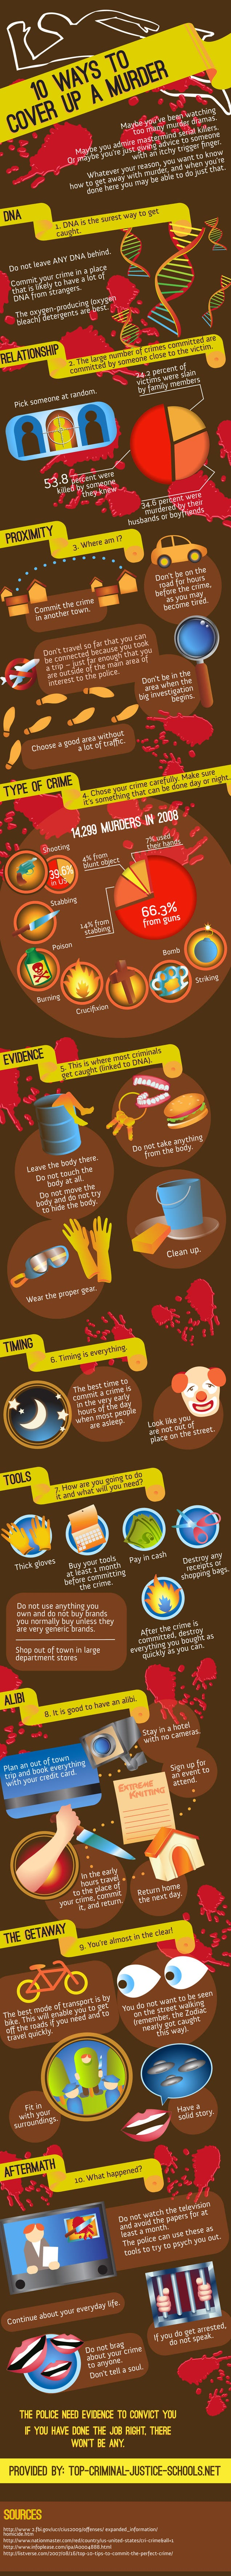 10 steps to commit a murder and get away with it